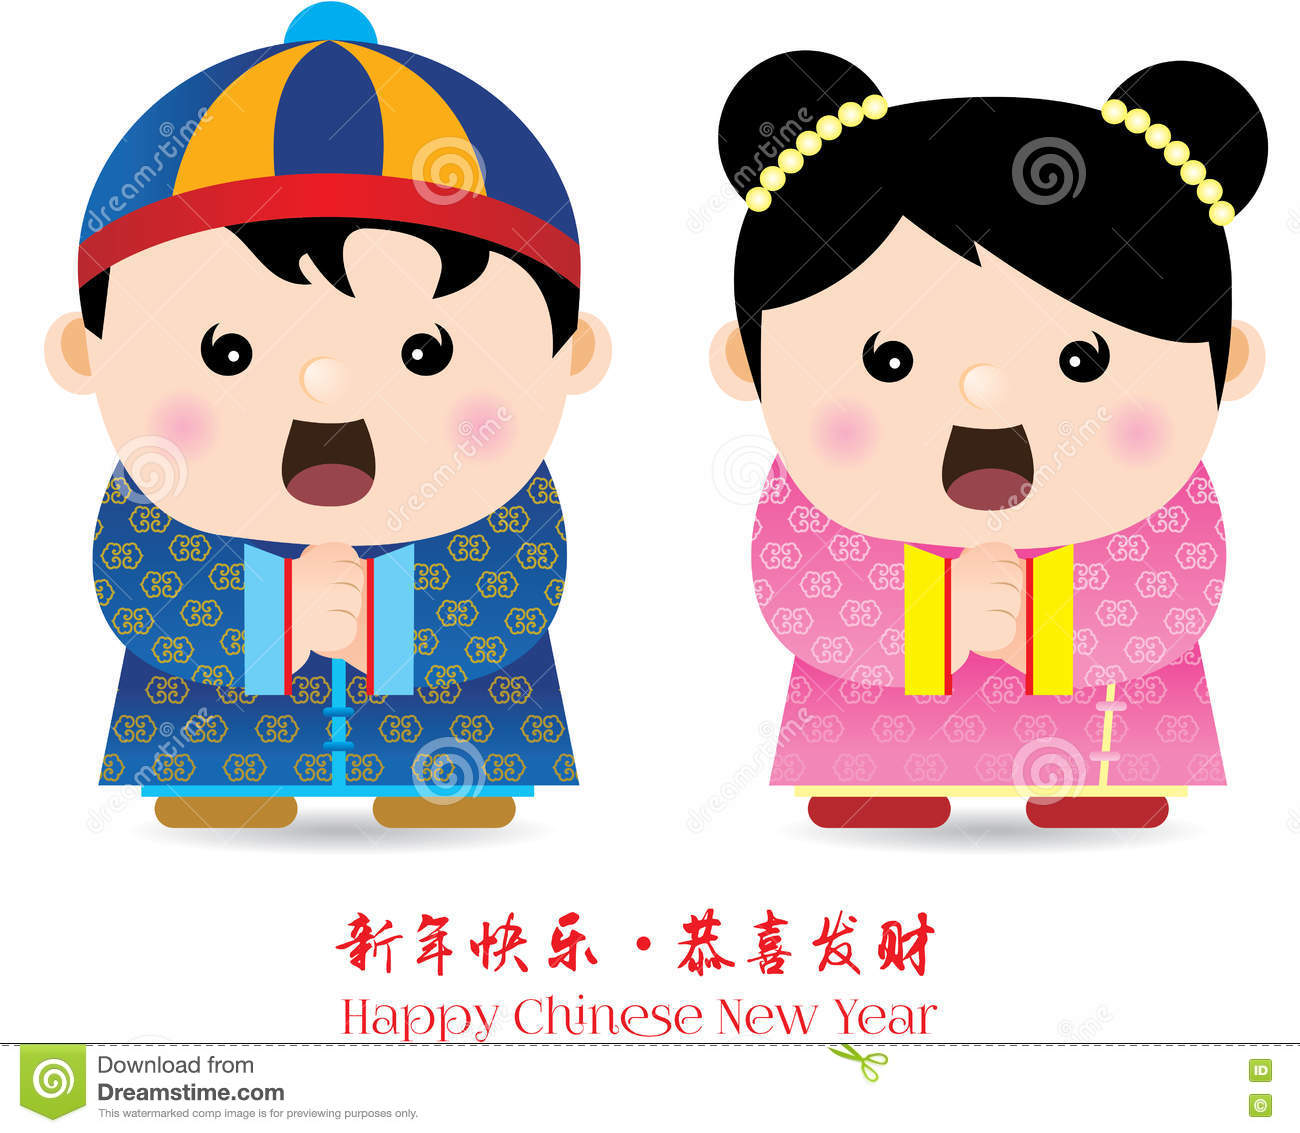 Asian kids greeting stock vector. Illustration of wishing.